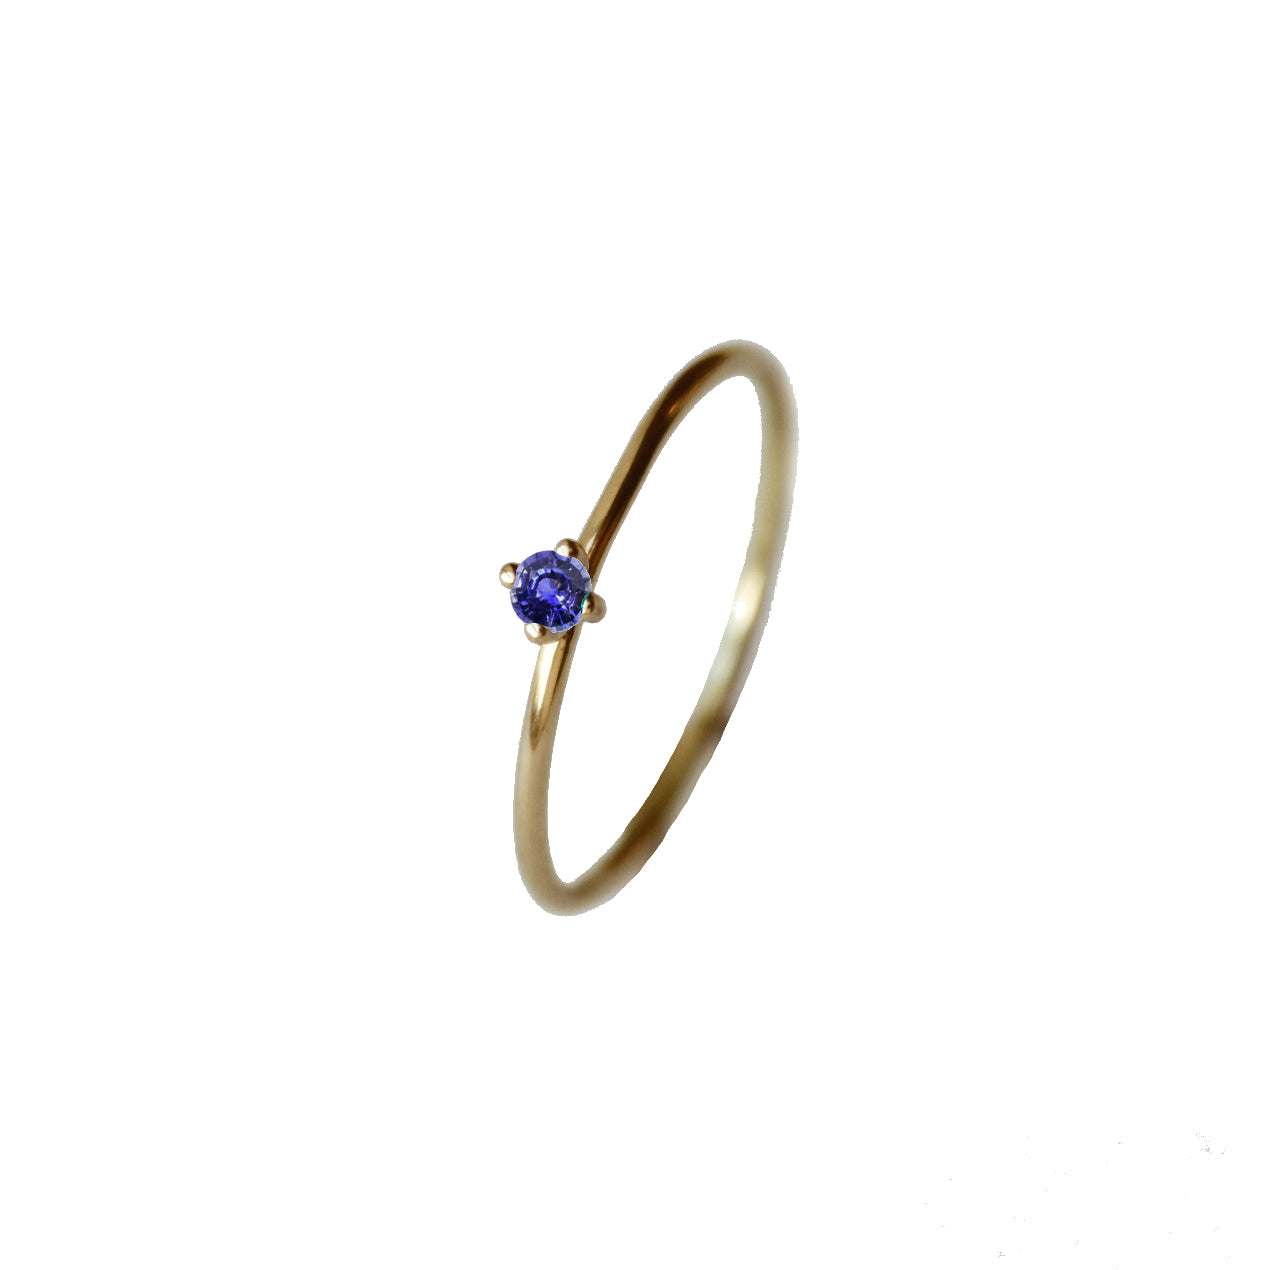 Tiny Pointy Ring - Blue sapphire